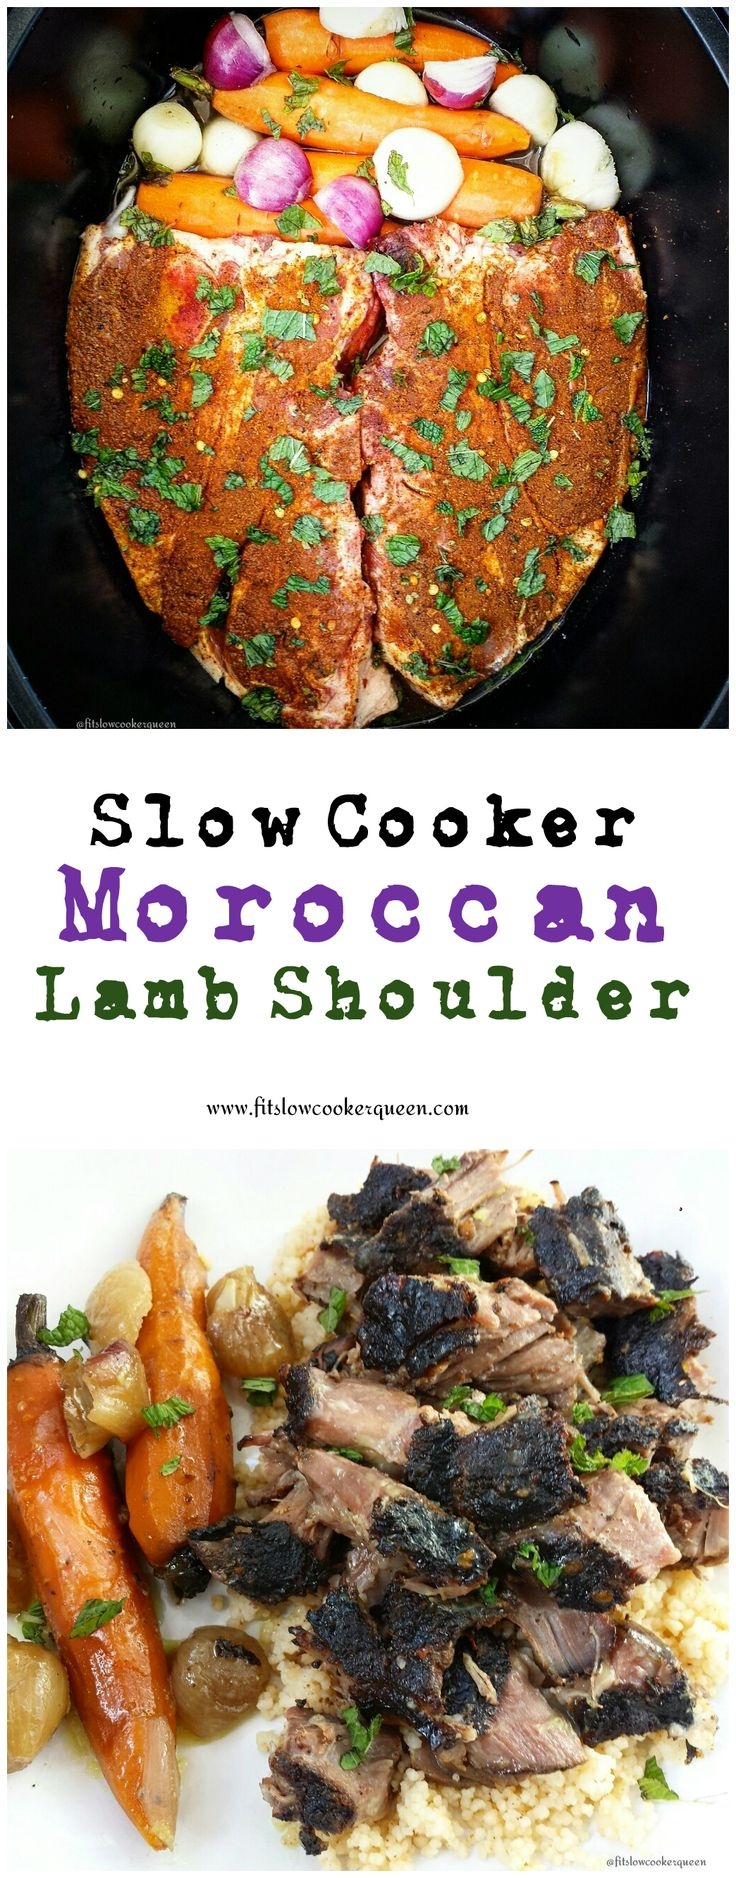 Lamb, spices, and a few vegetables are all you need for this simple slow cooker recipe. Together these ingredients will bring the flavors of Morocco to your kitchen.